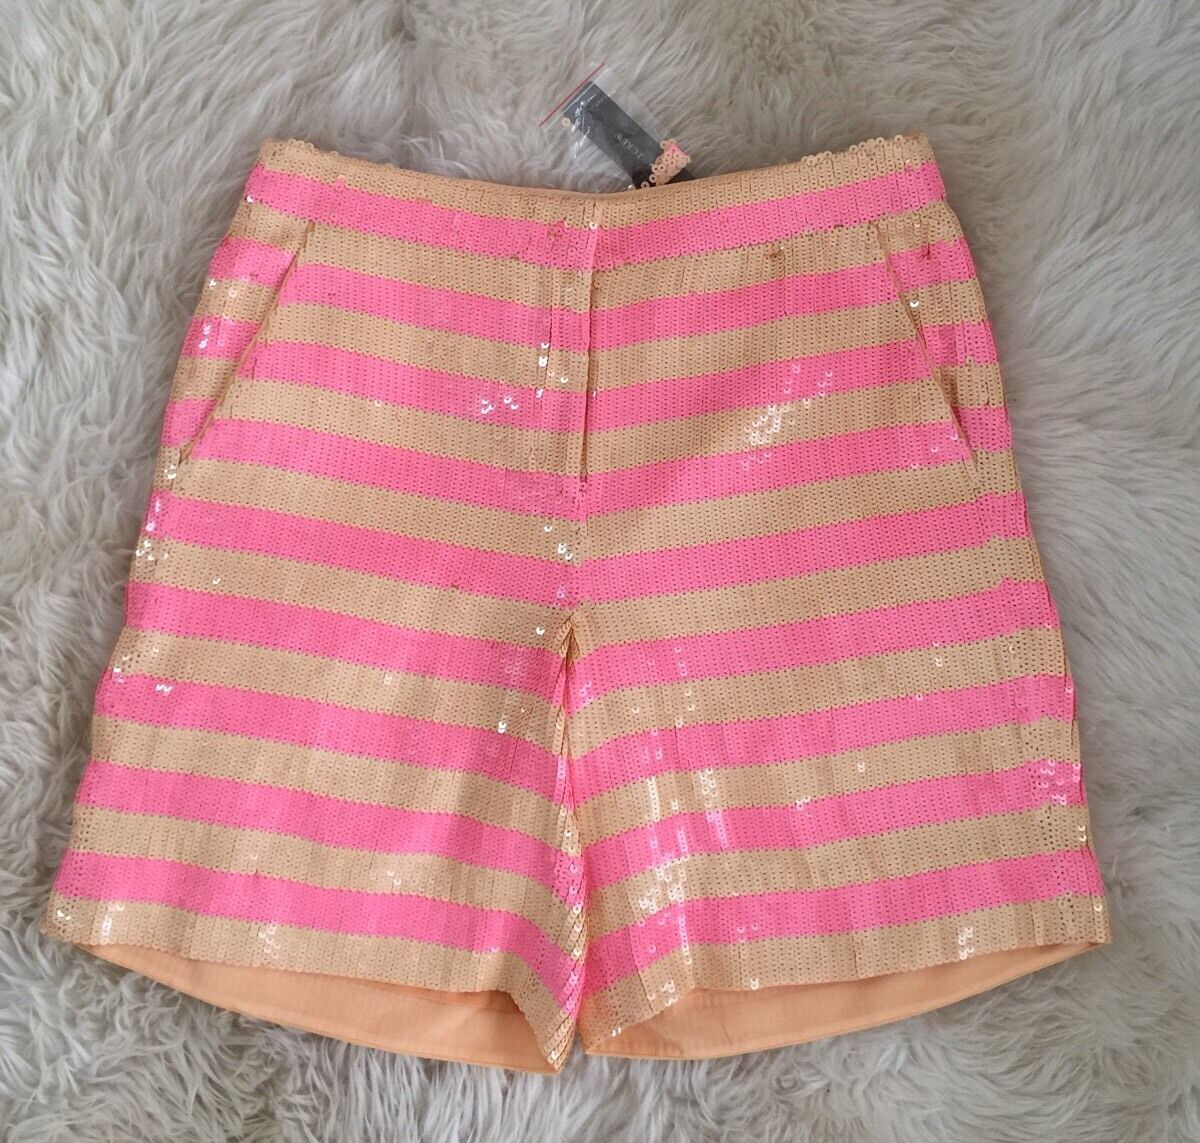 New JCREW Collection shorts in sequin stripe F2924 Size 6 Pink orange RARE